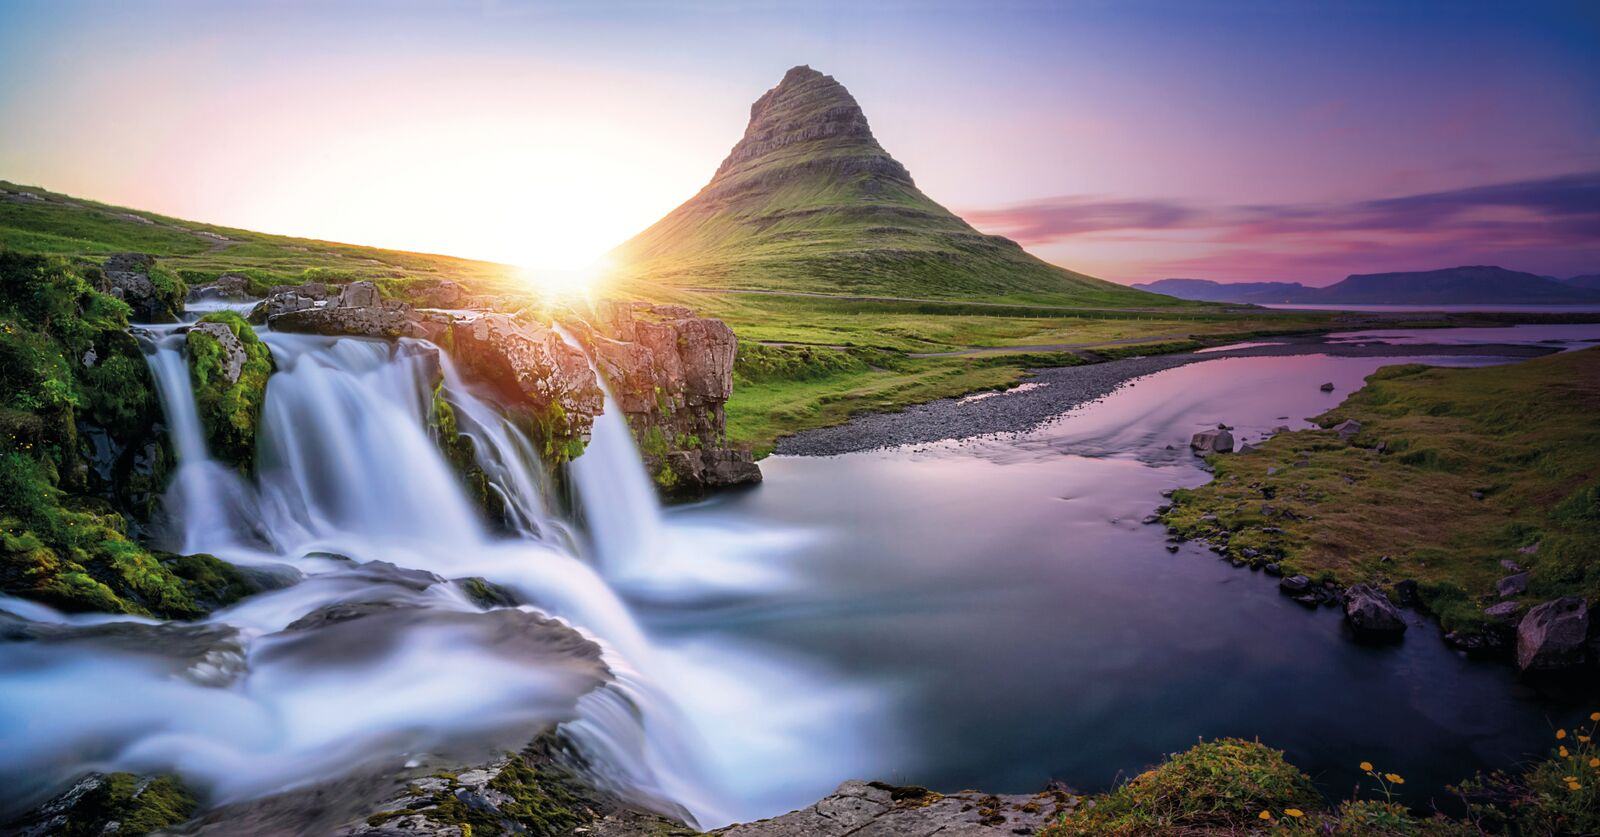 iceland vacation packages northern lights, Iceland vacation packages 2018, Iceland vacation packages groupon, Iceland vacation packages 2019, Iceland vacation packages from toronto, affordable iceland vacation, Iceland tours